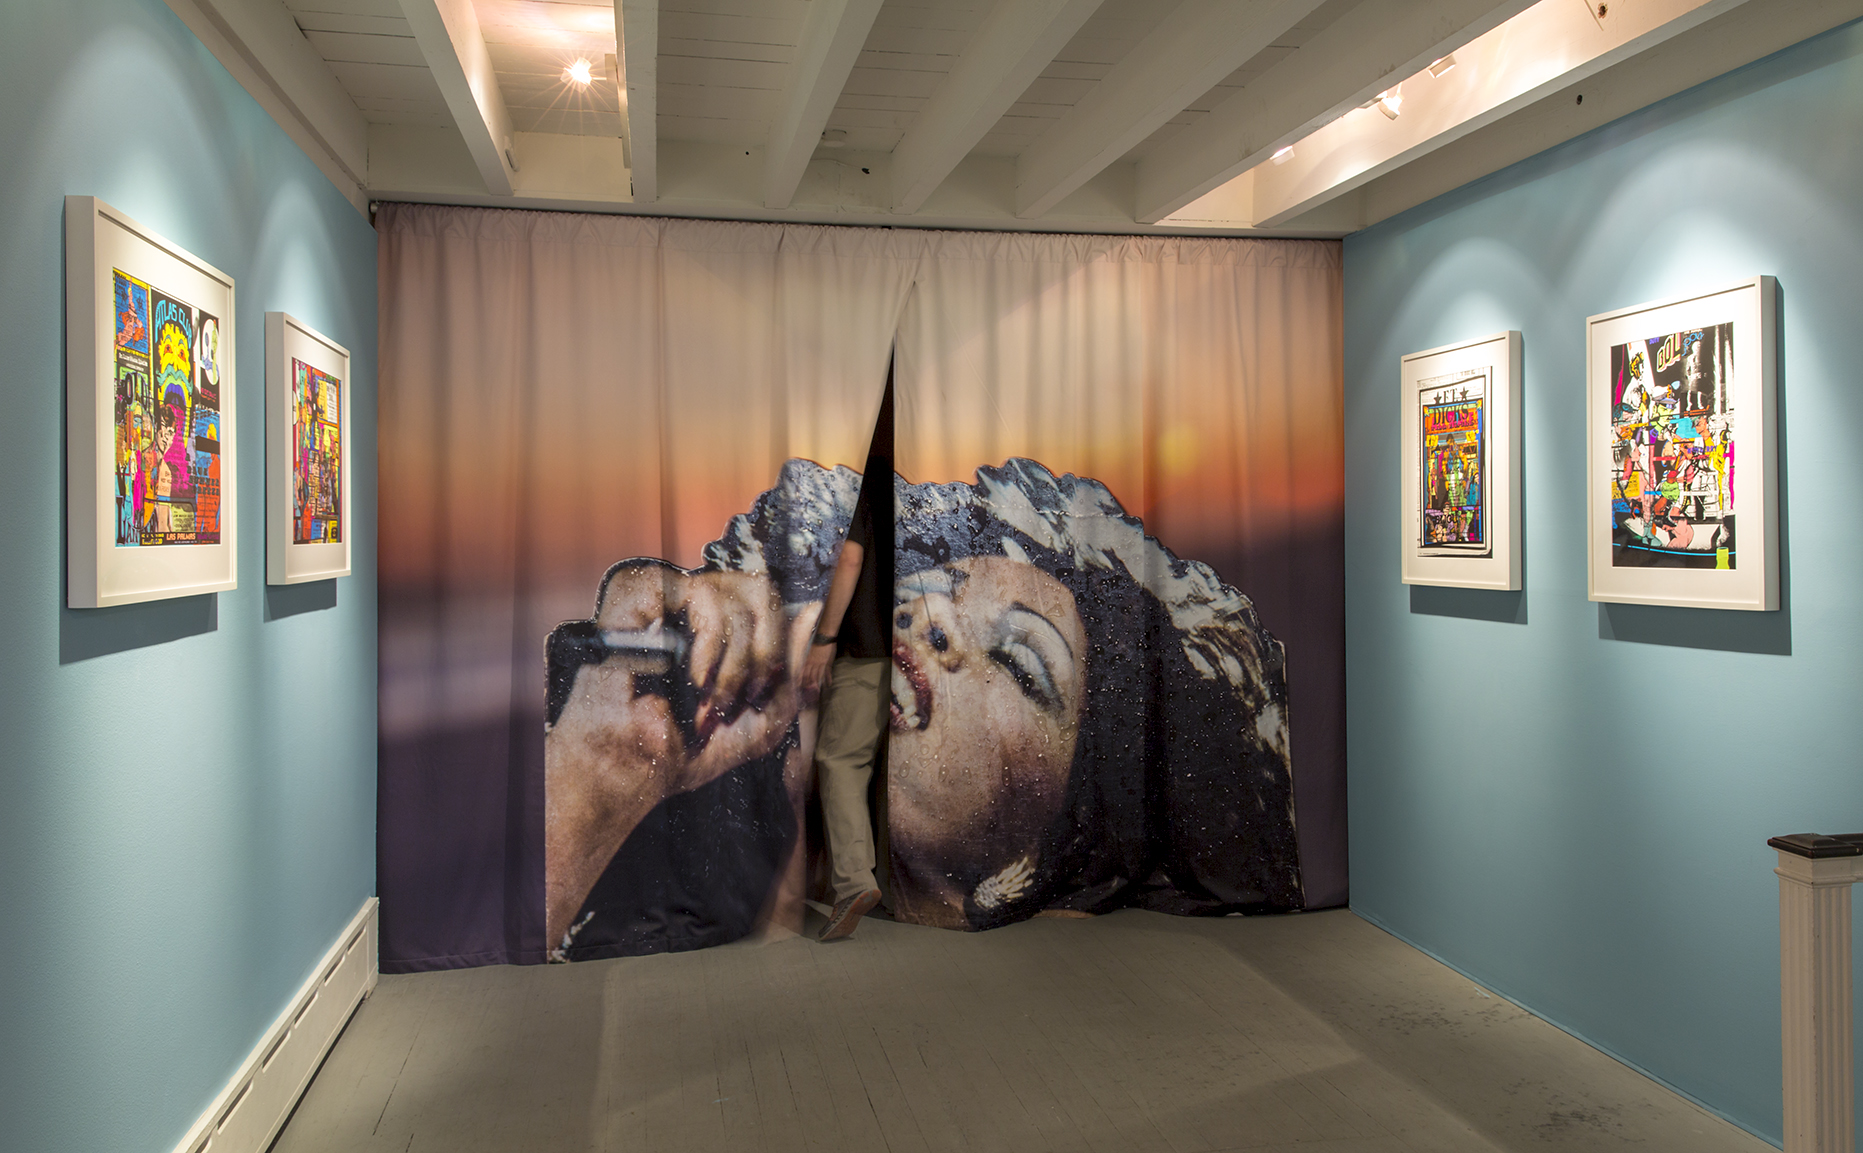 "Live and More , dye sublimation on fabric, 93"" x 123""-145.5"", 2015.  Bayside Revisited  at The Print Center, 2015"